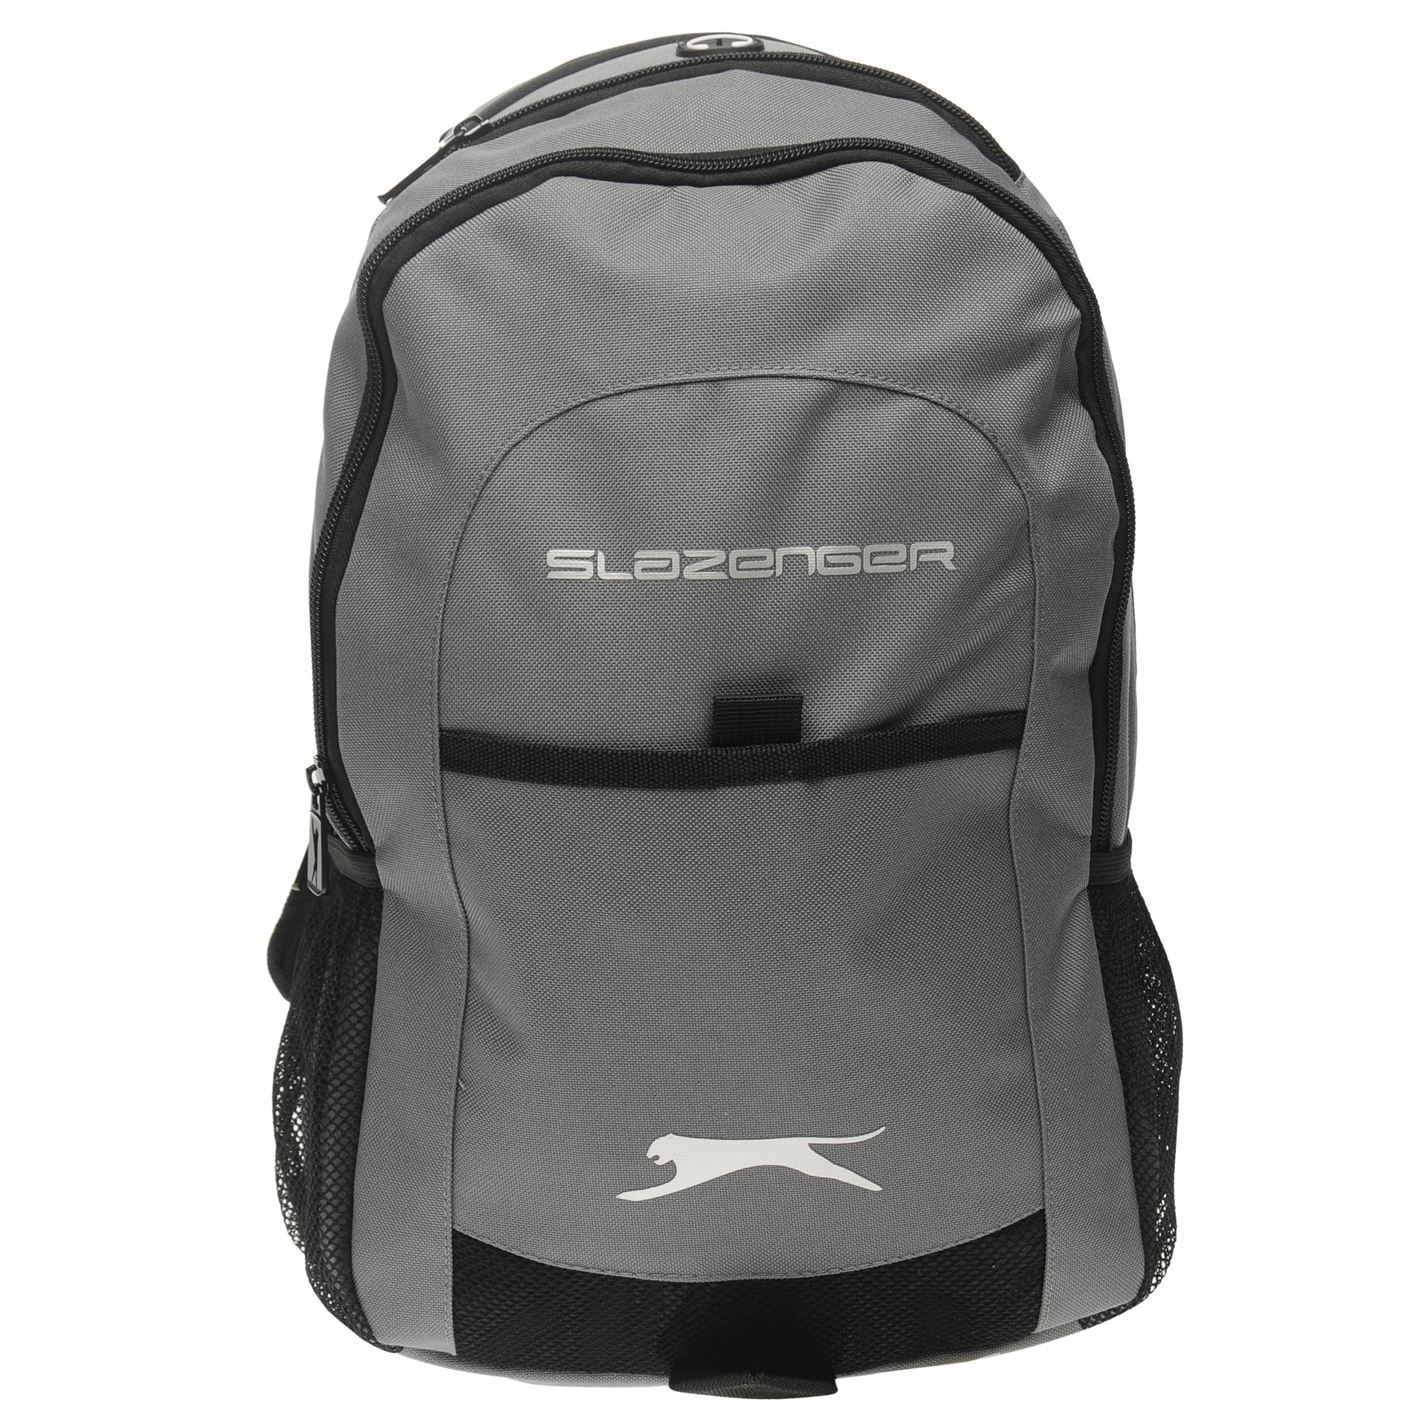 3c7c864f58e Slazenger Tech Backpack Rucksack Bag School Travel Accessory Brand ...